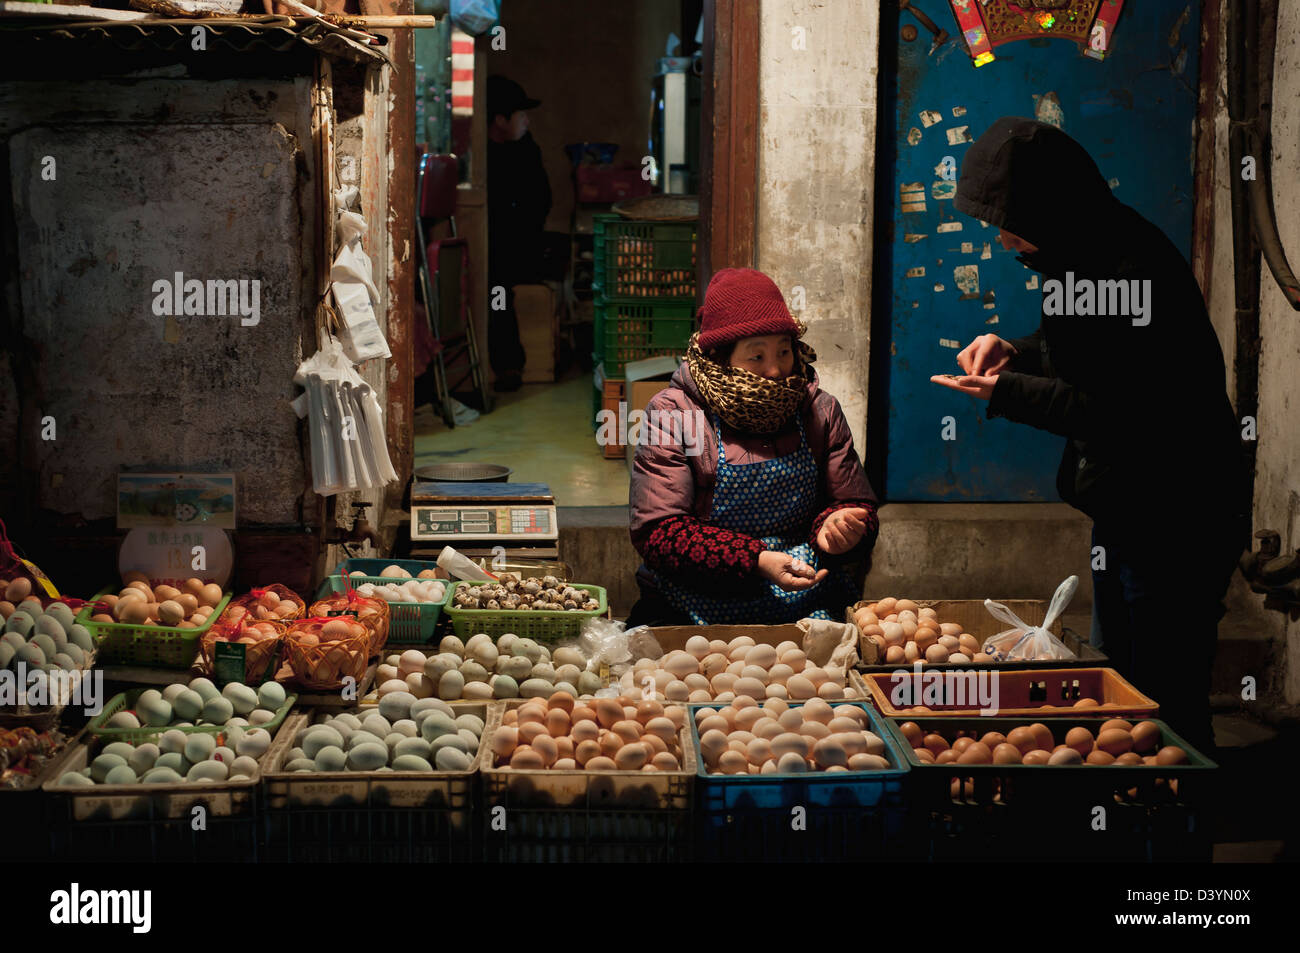 A customer purchases eggs from an elderly market vendor at Guangqi Road Market, Shanghai - Stock Image